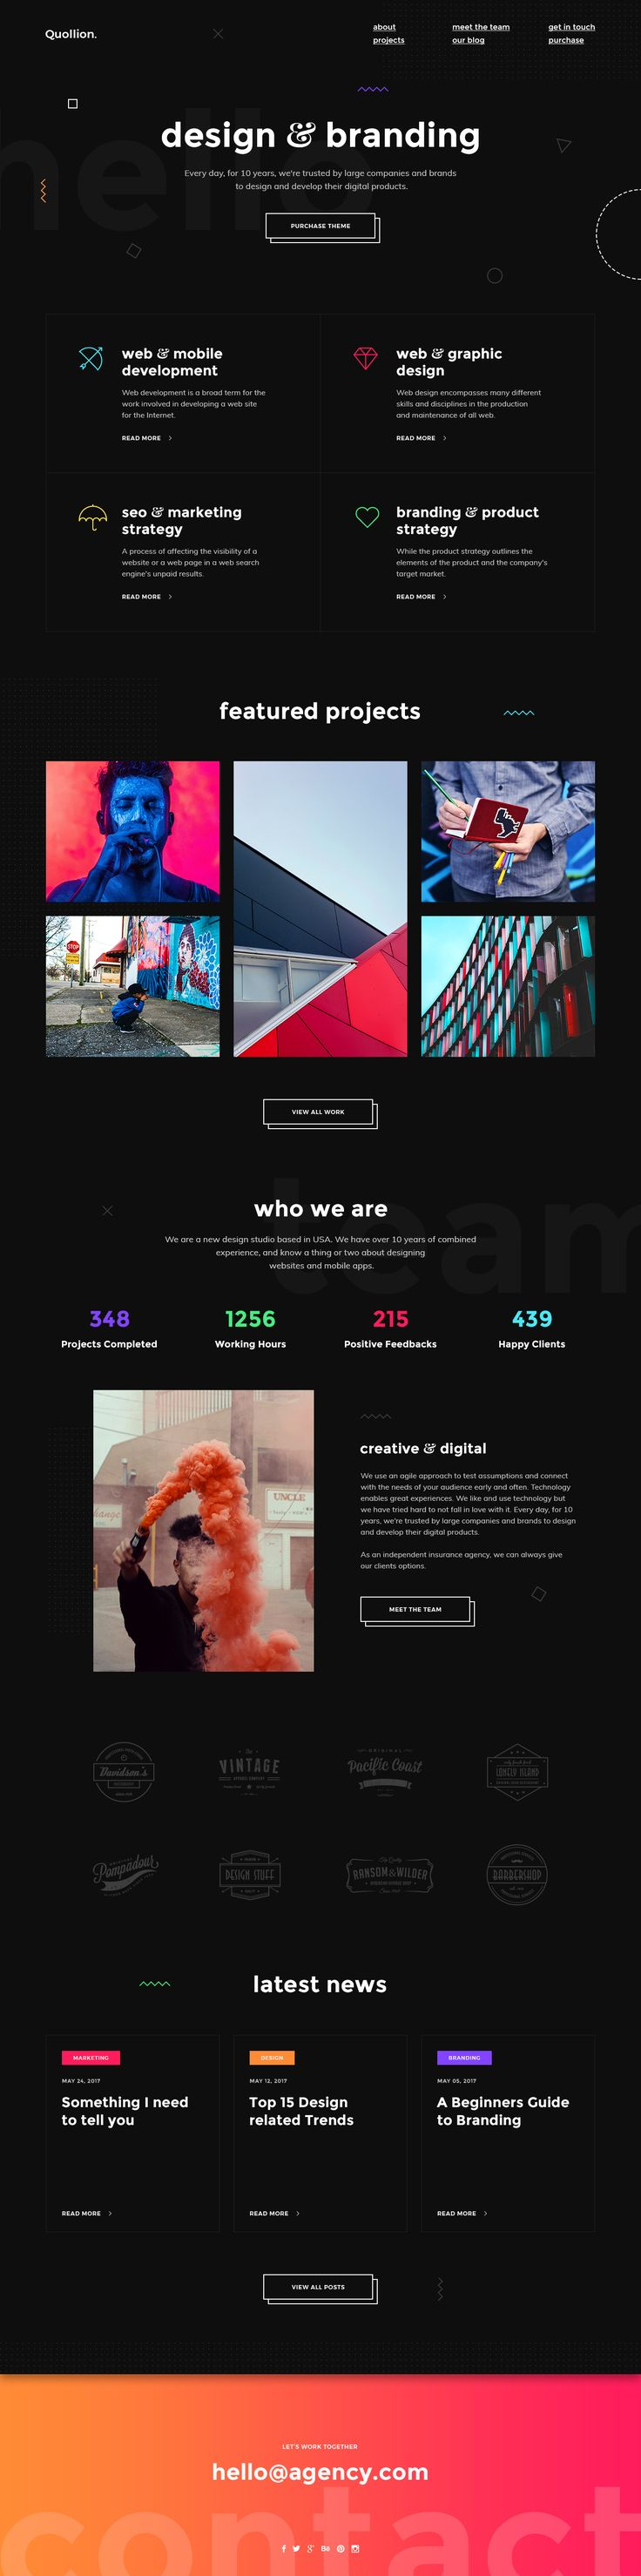 Quollion - Creative & Modern Portfolio PSD Template #psd #studio • Download ➝ https://themeforest.net/item/quollion-creative-modern-portfolio-psd-template/21003345?ref=pxcr